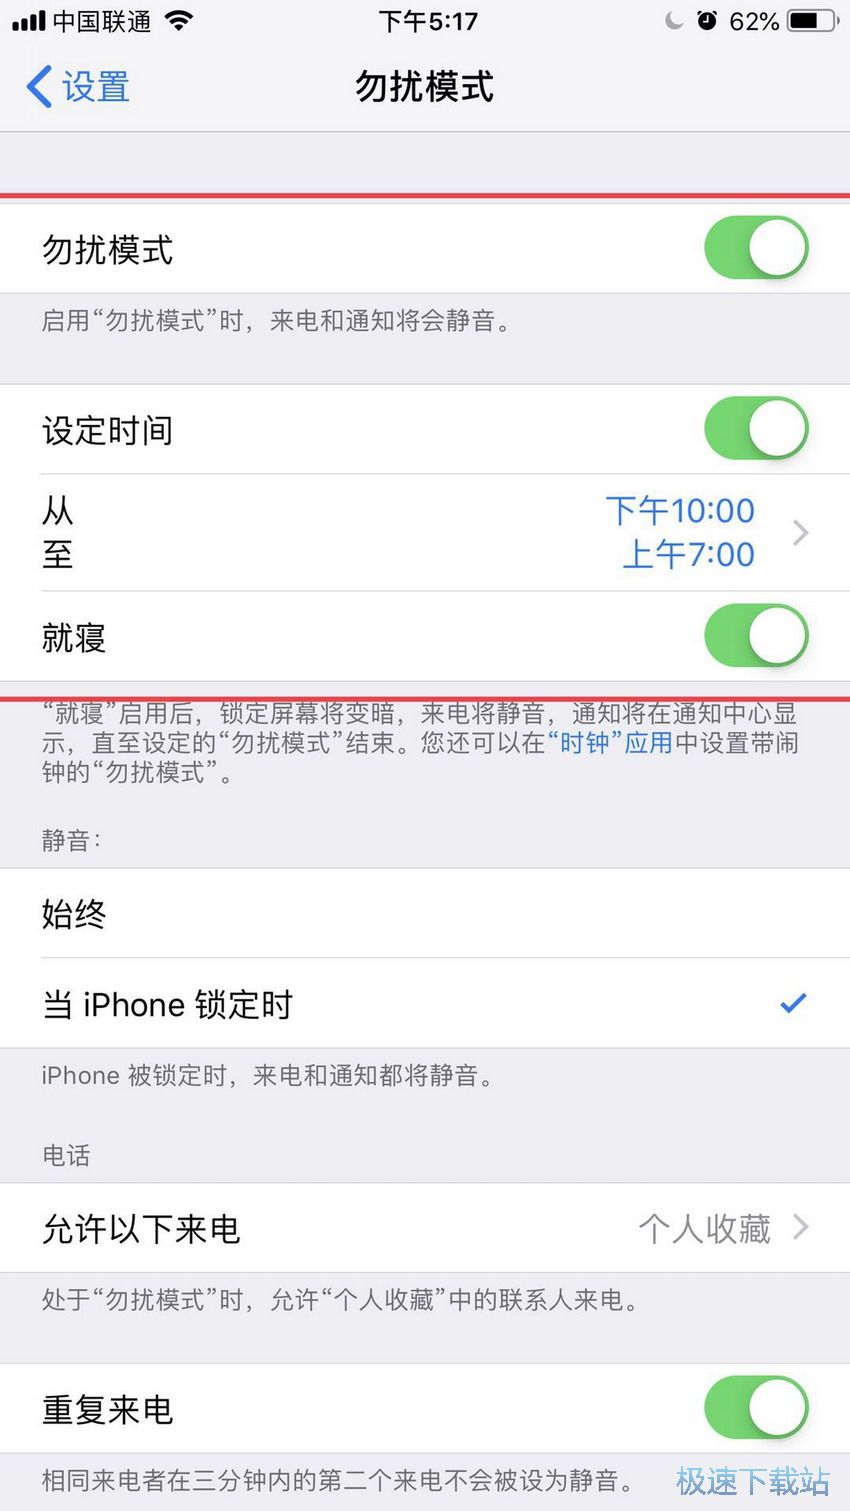 iPhone手�C的�i屏界面怎么�O置天�怙@示? �s略�D